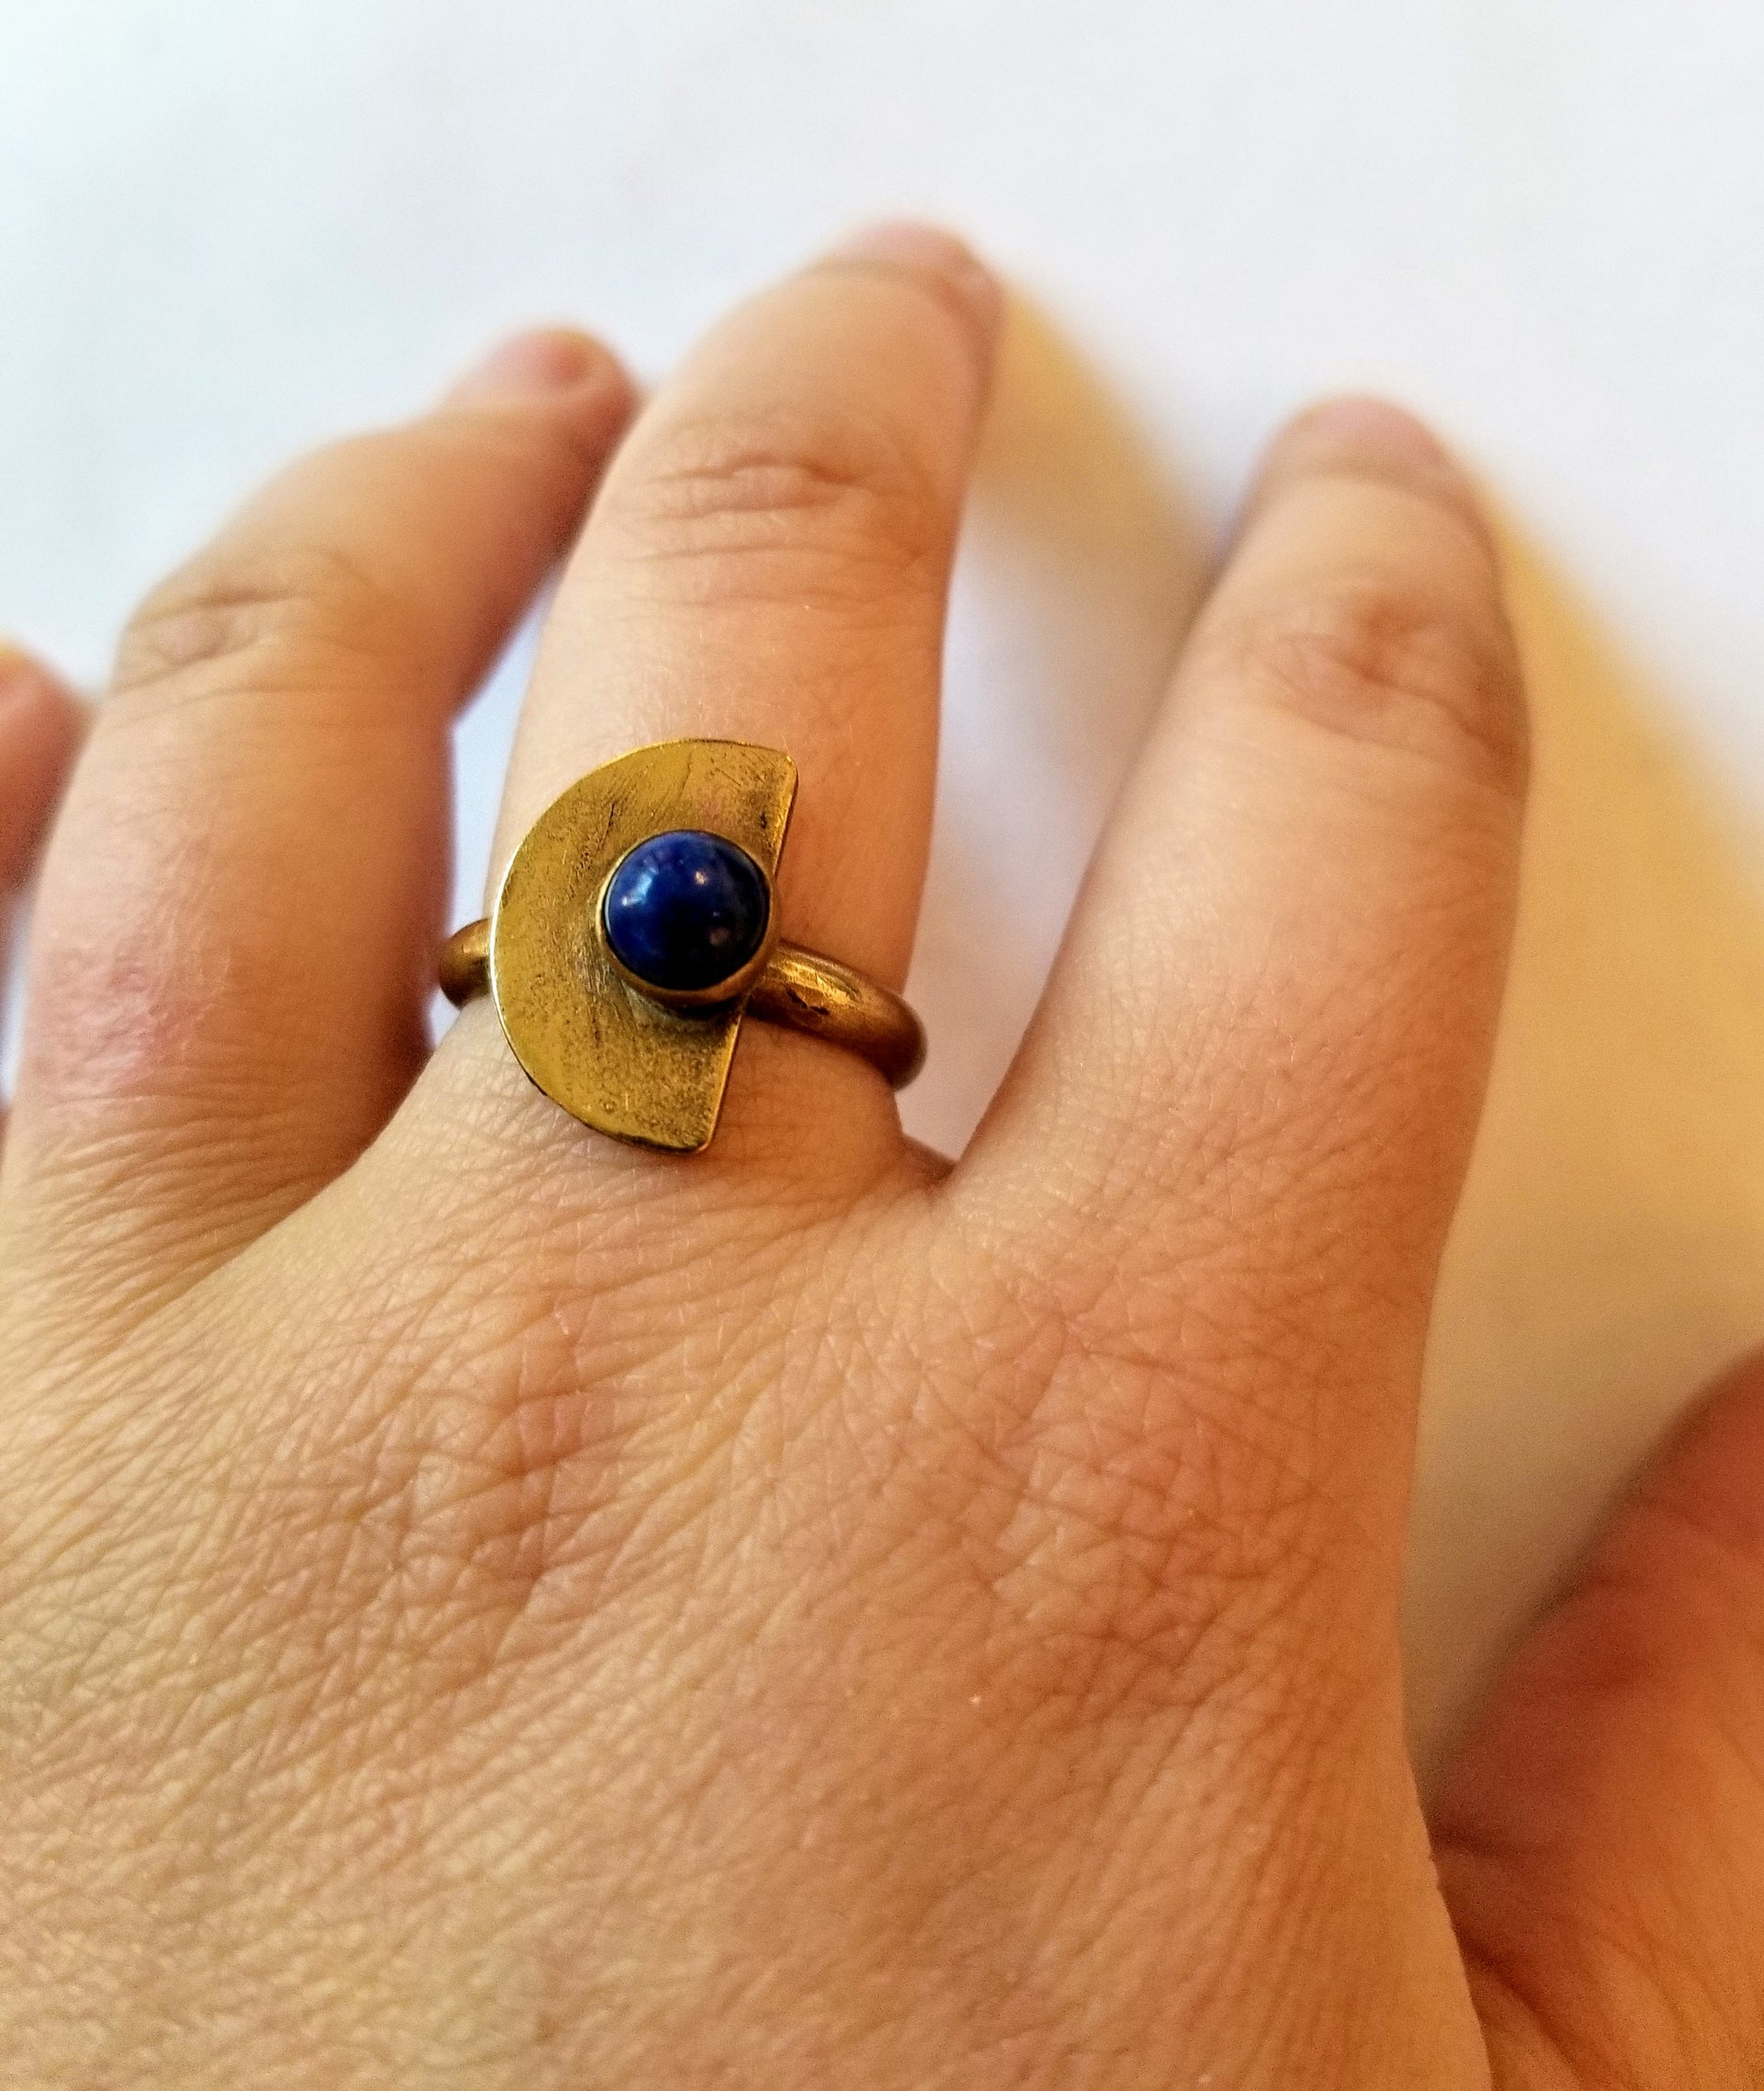 Half Moon Ring with Lapis